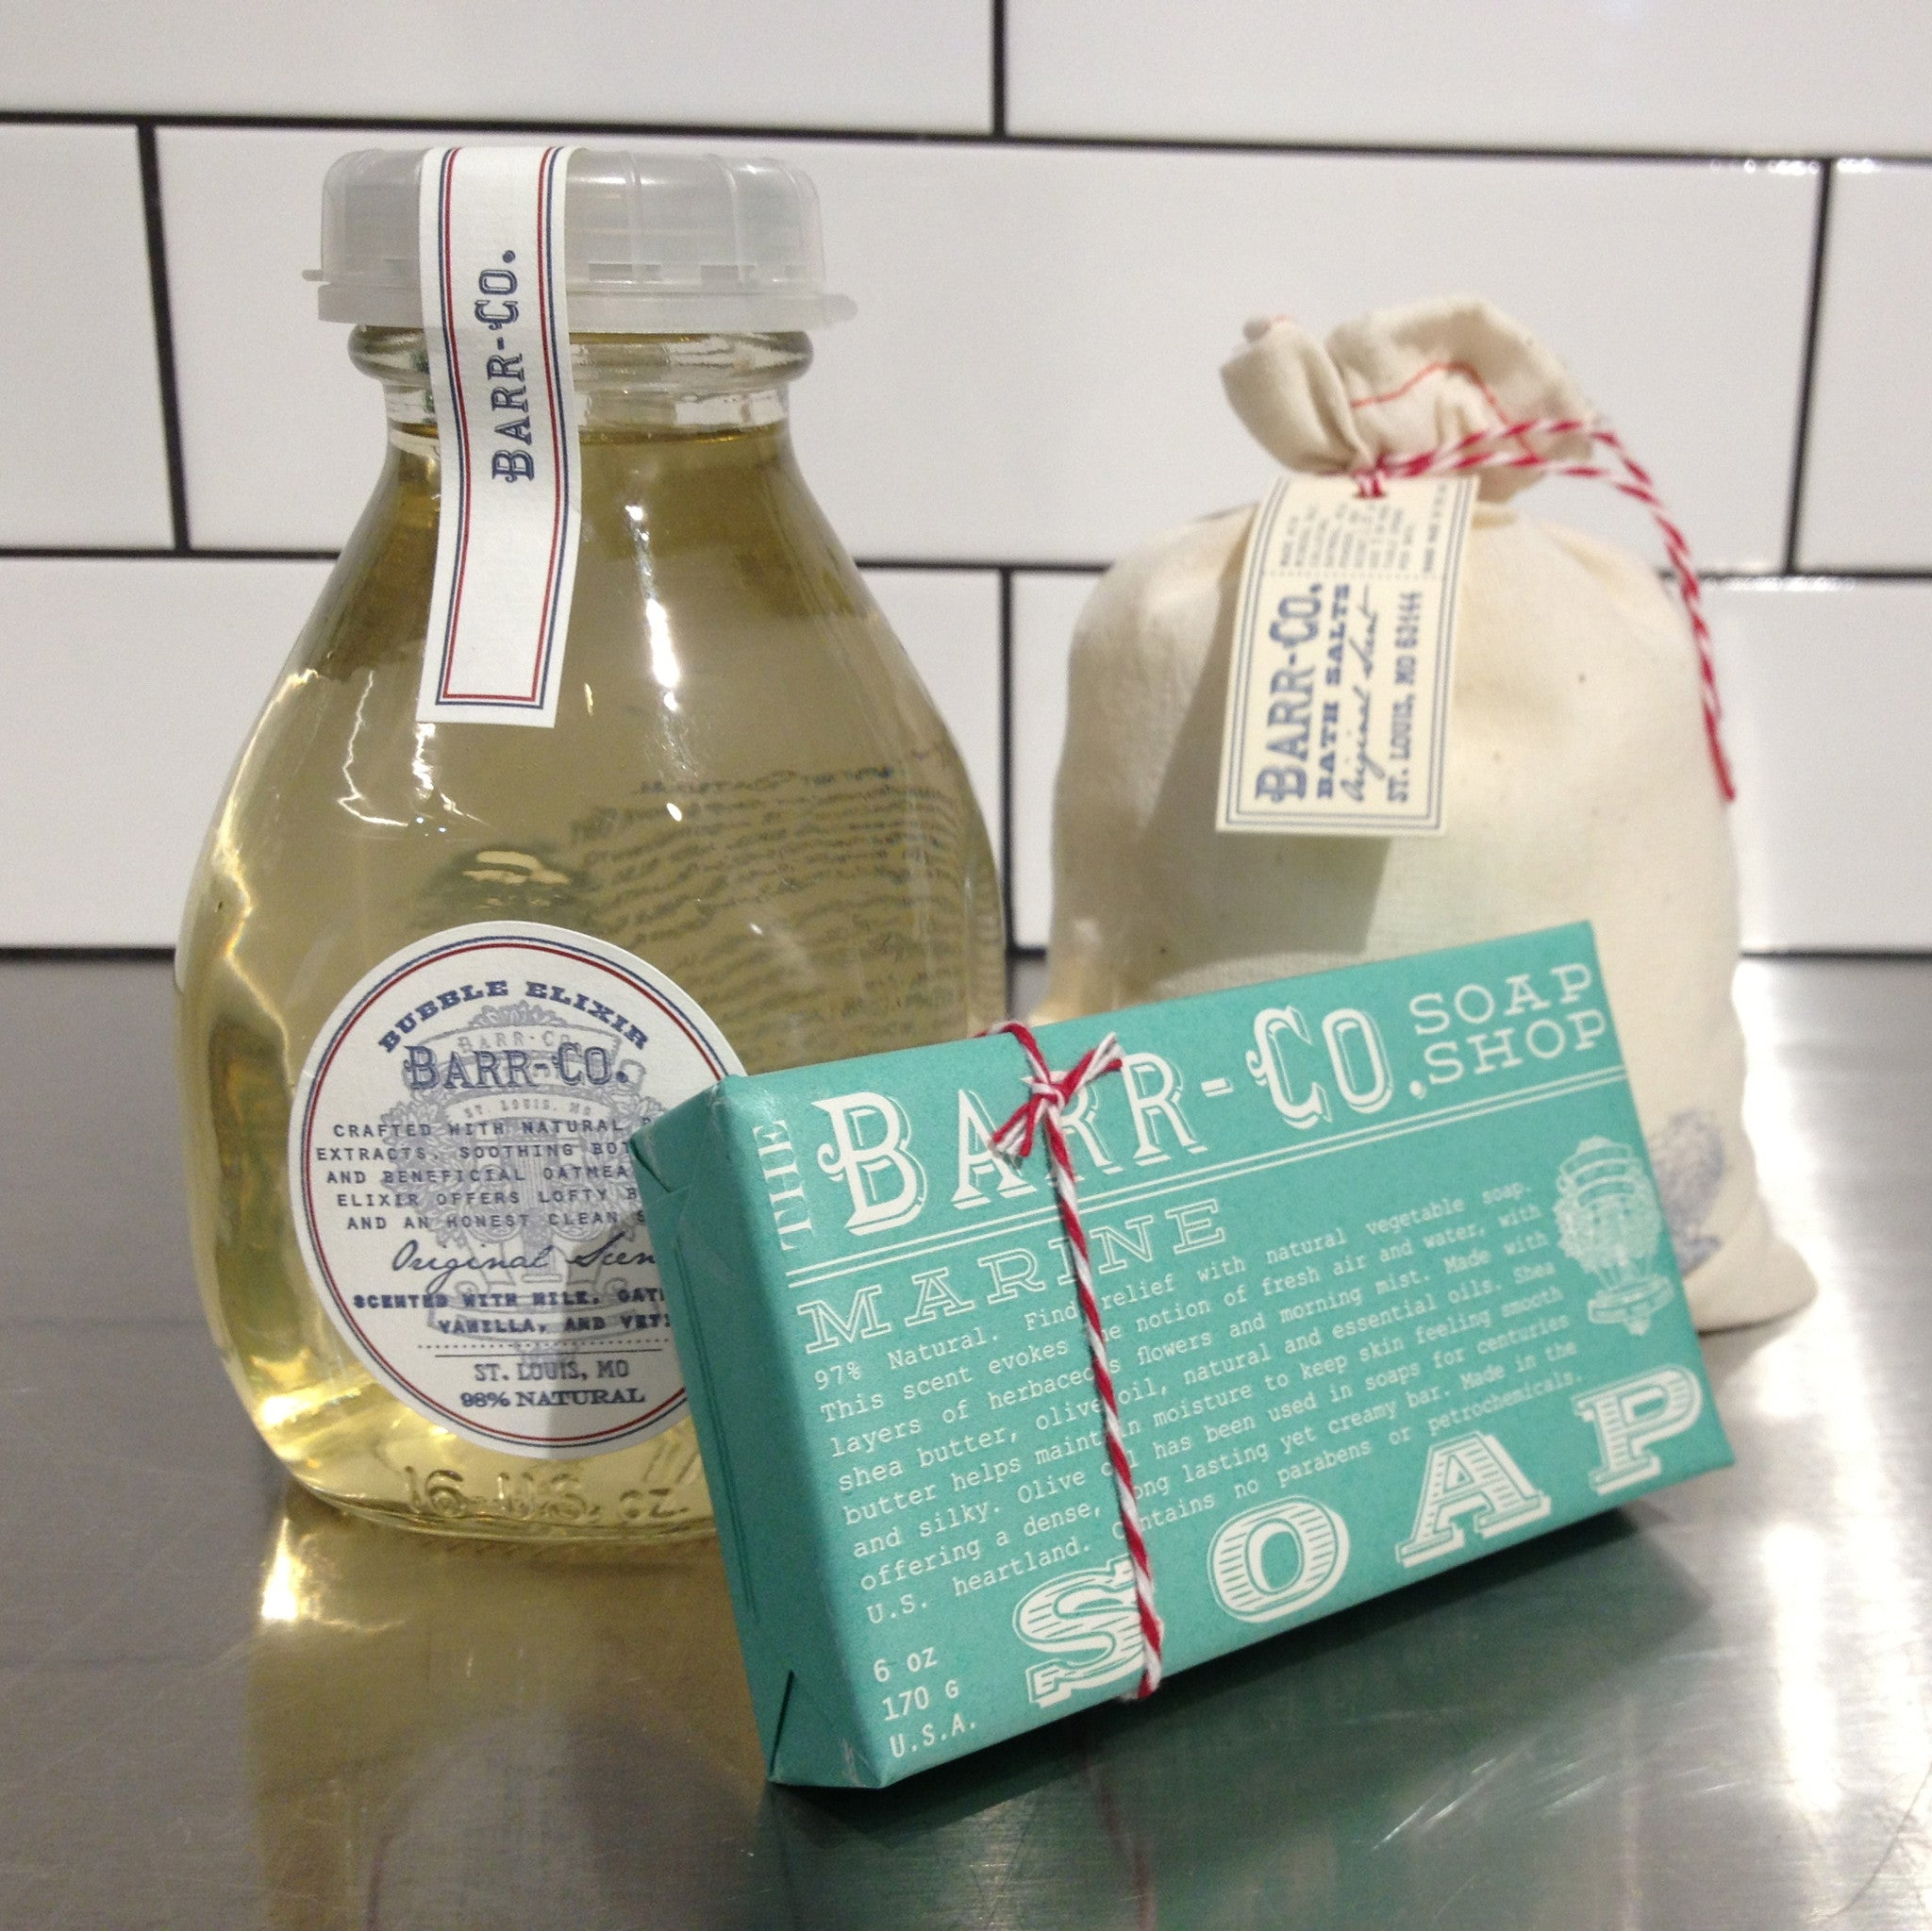 barr-co. mineral bath salts